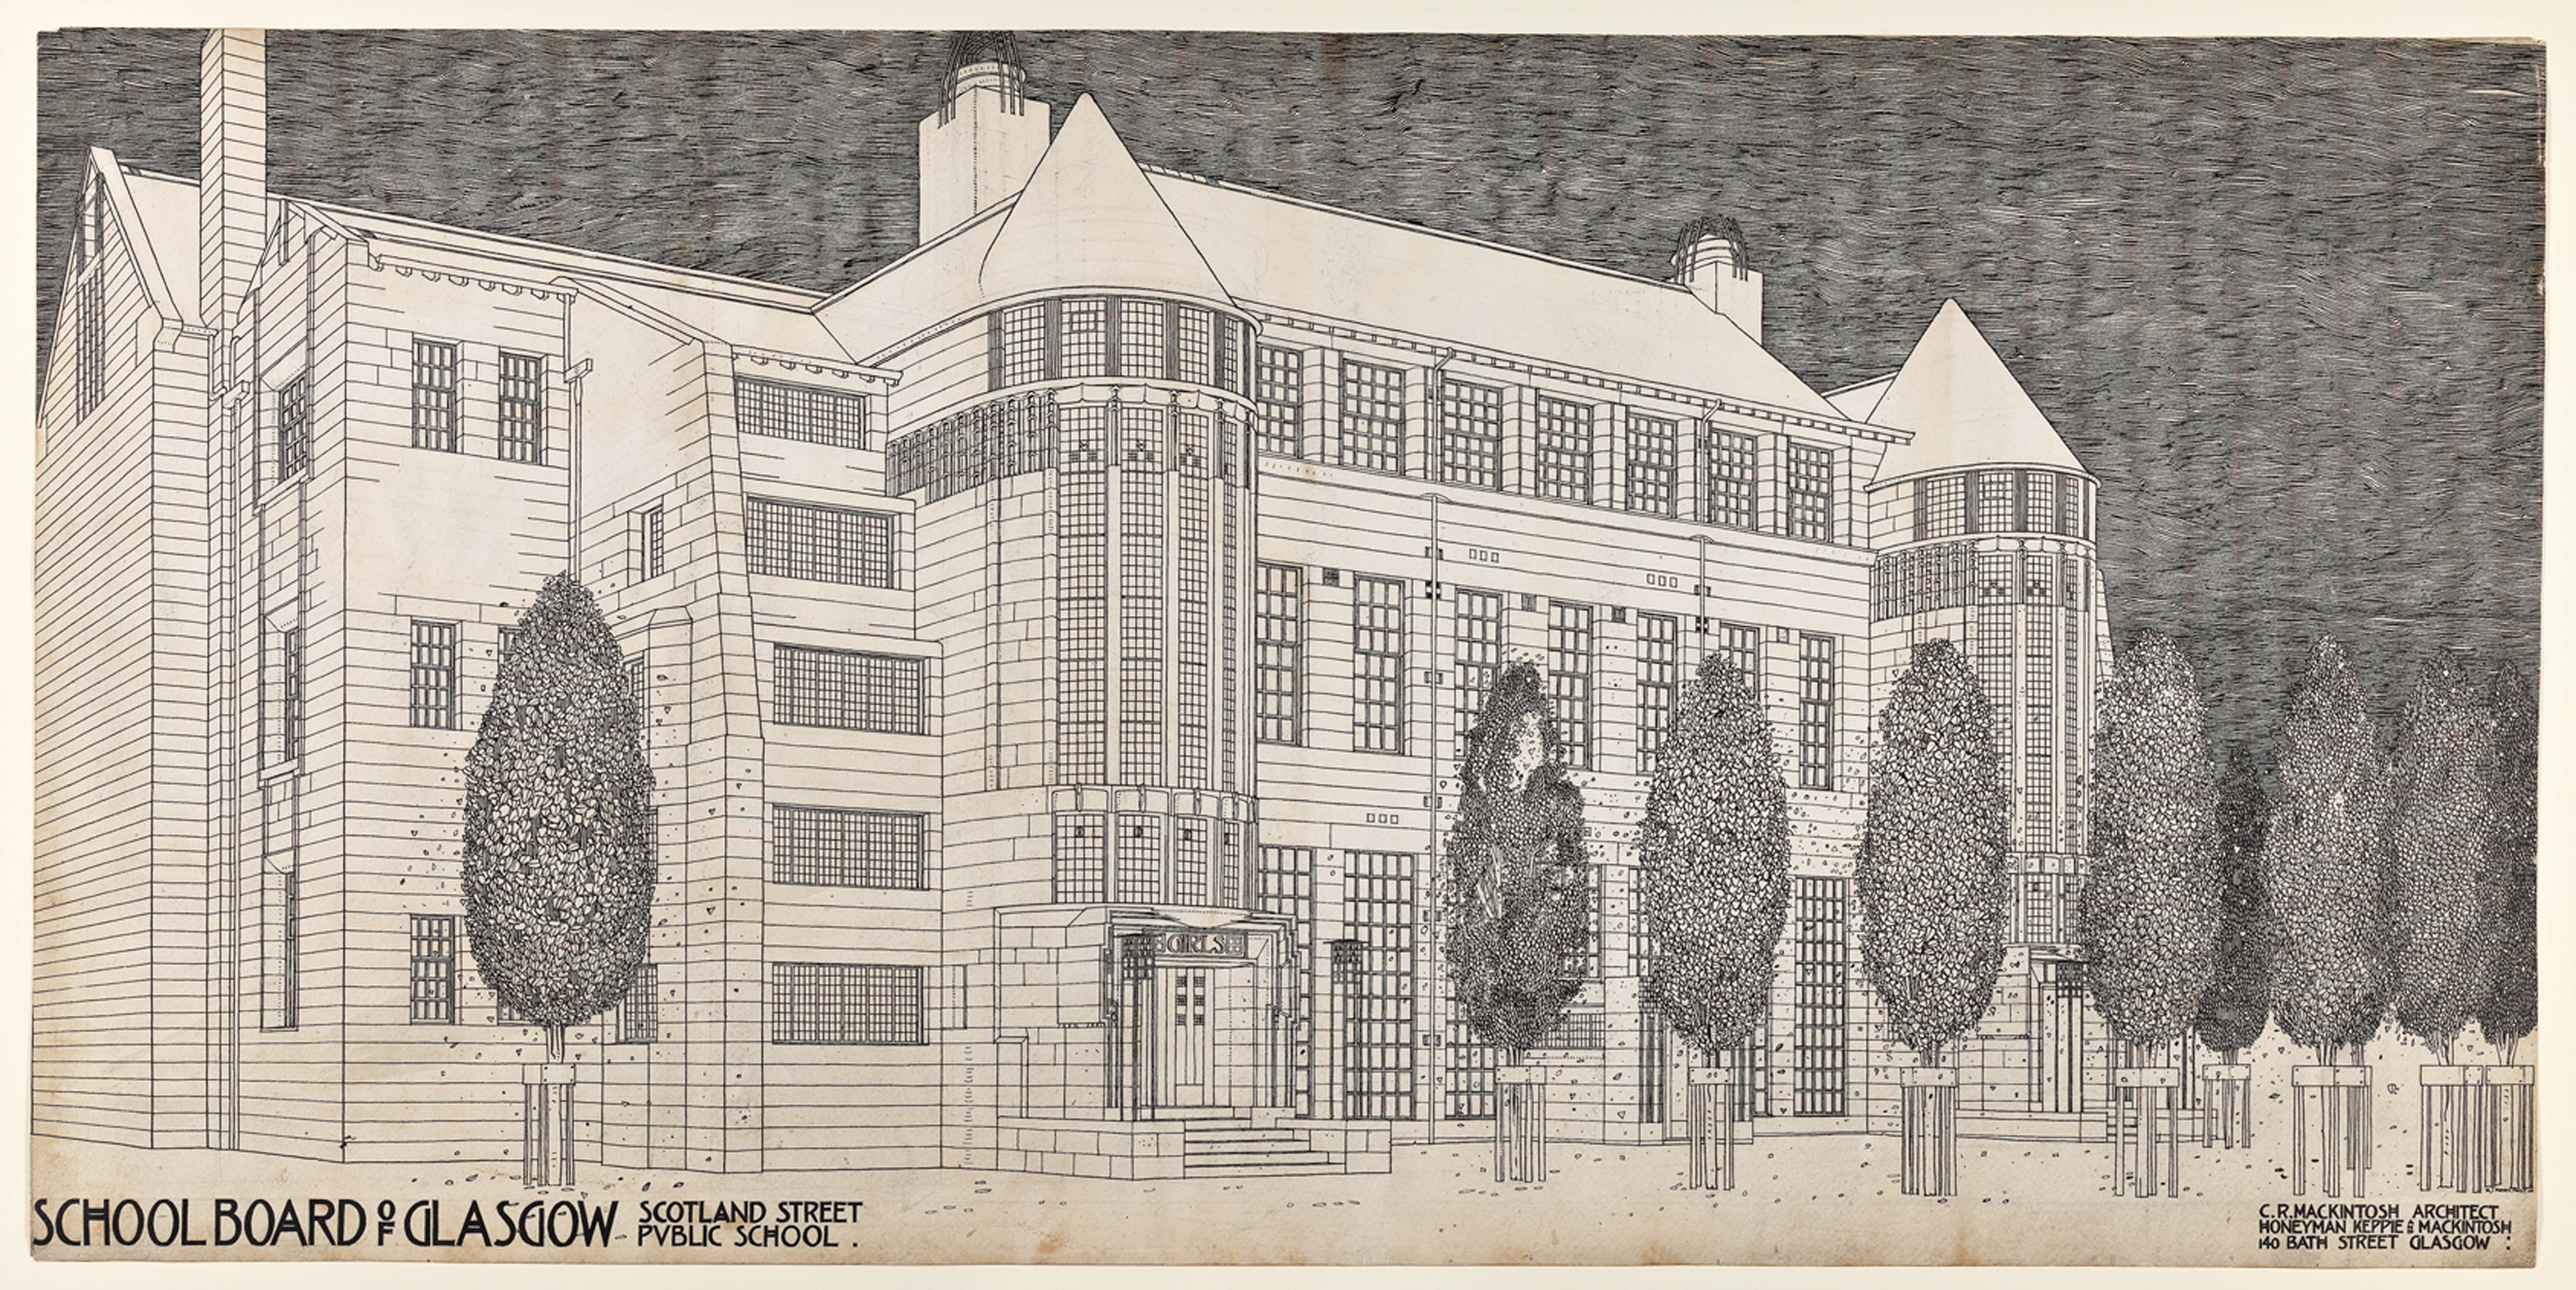 Design for Scotland Street School. (c) The Huntarian, University of Glasgow